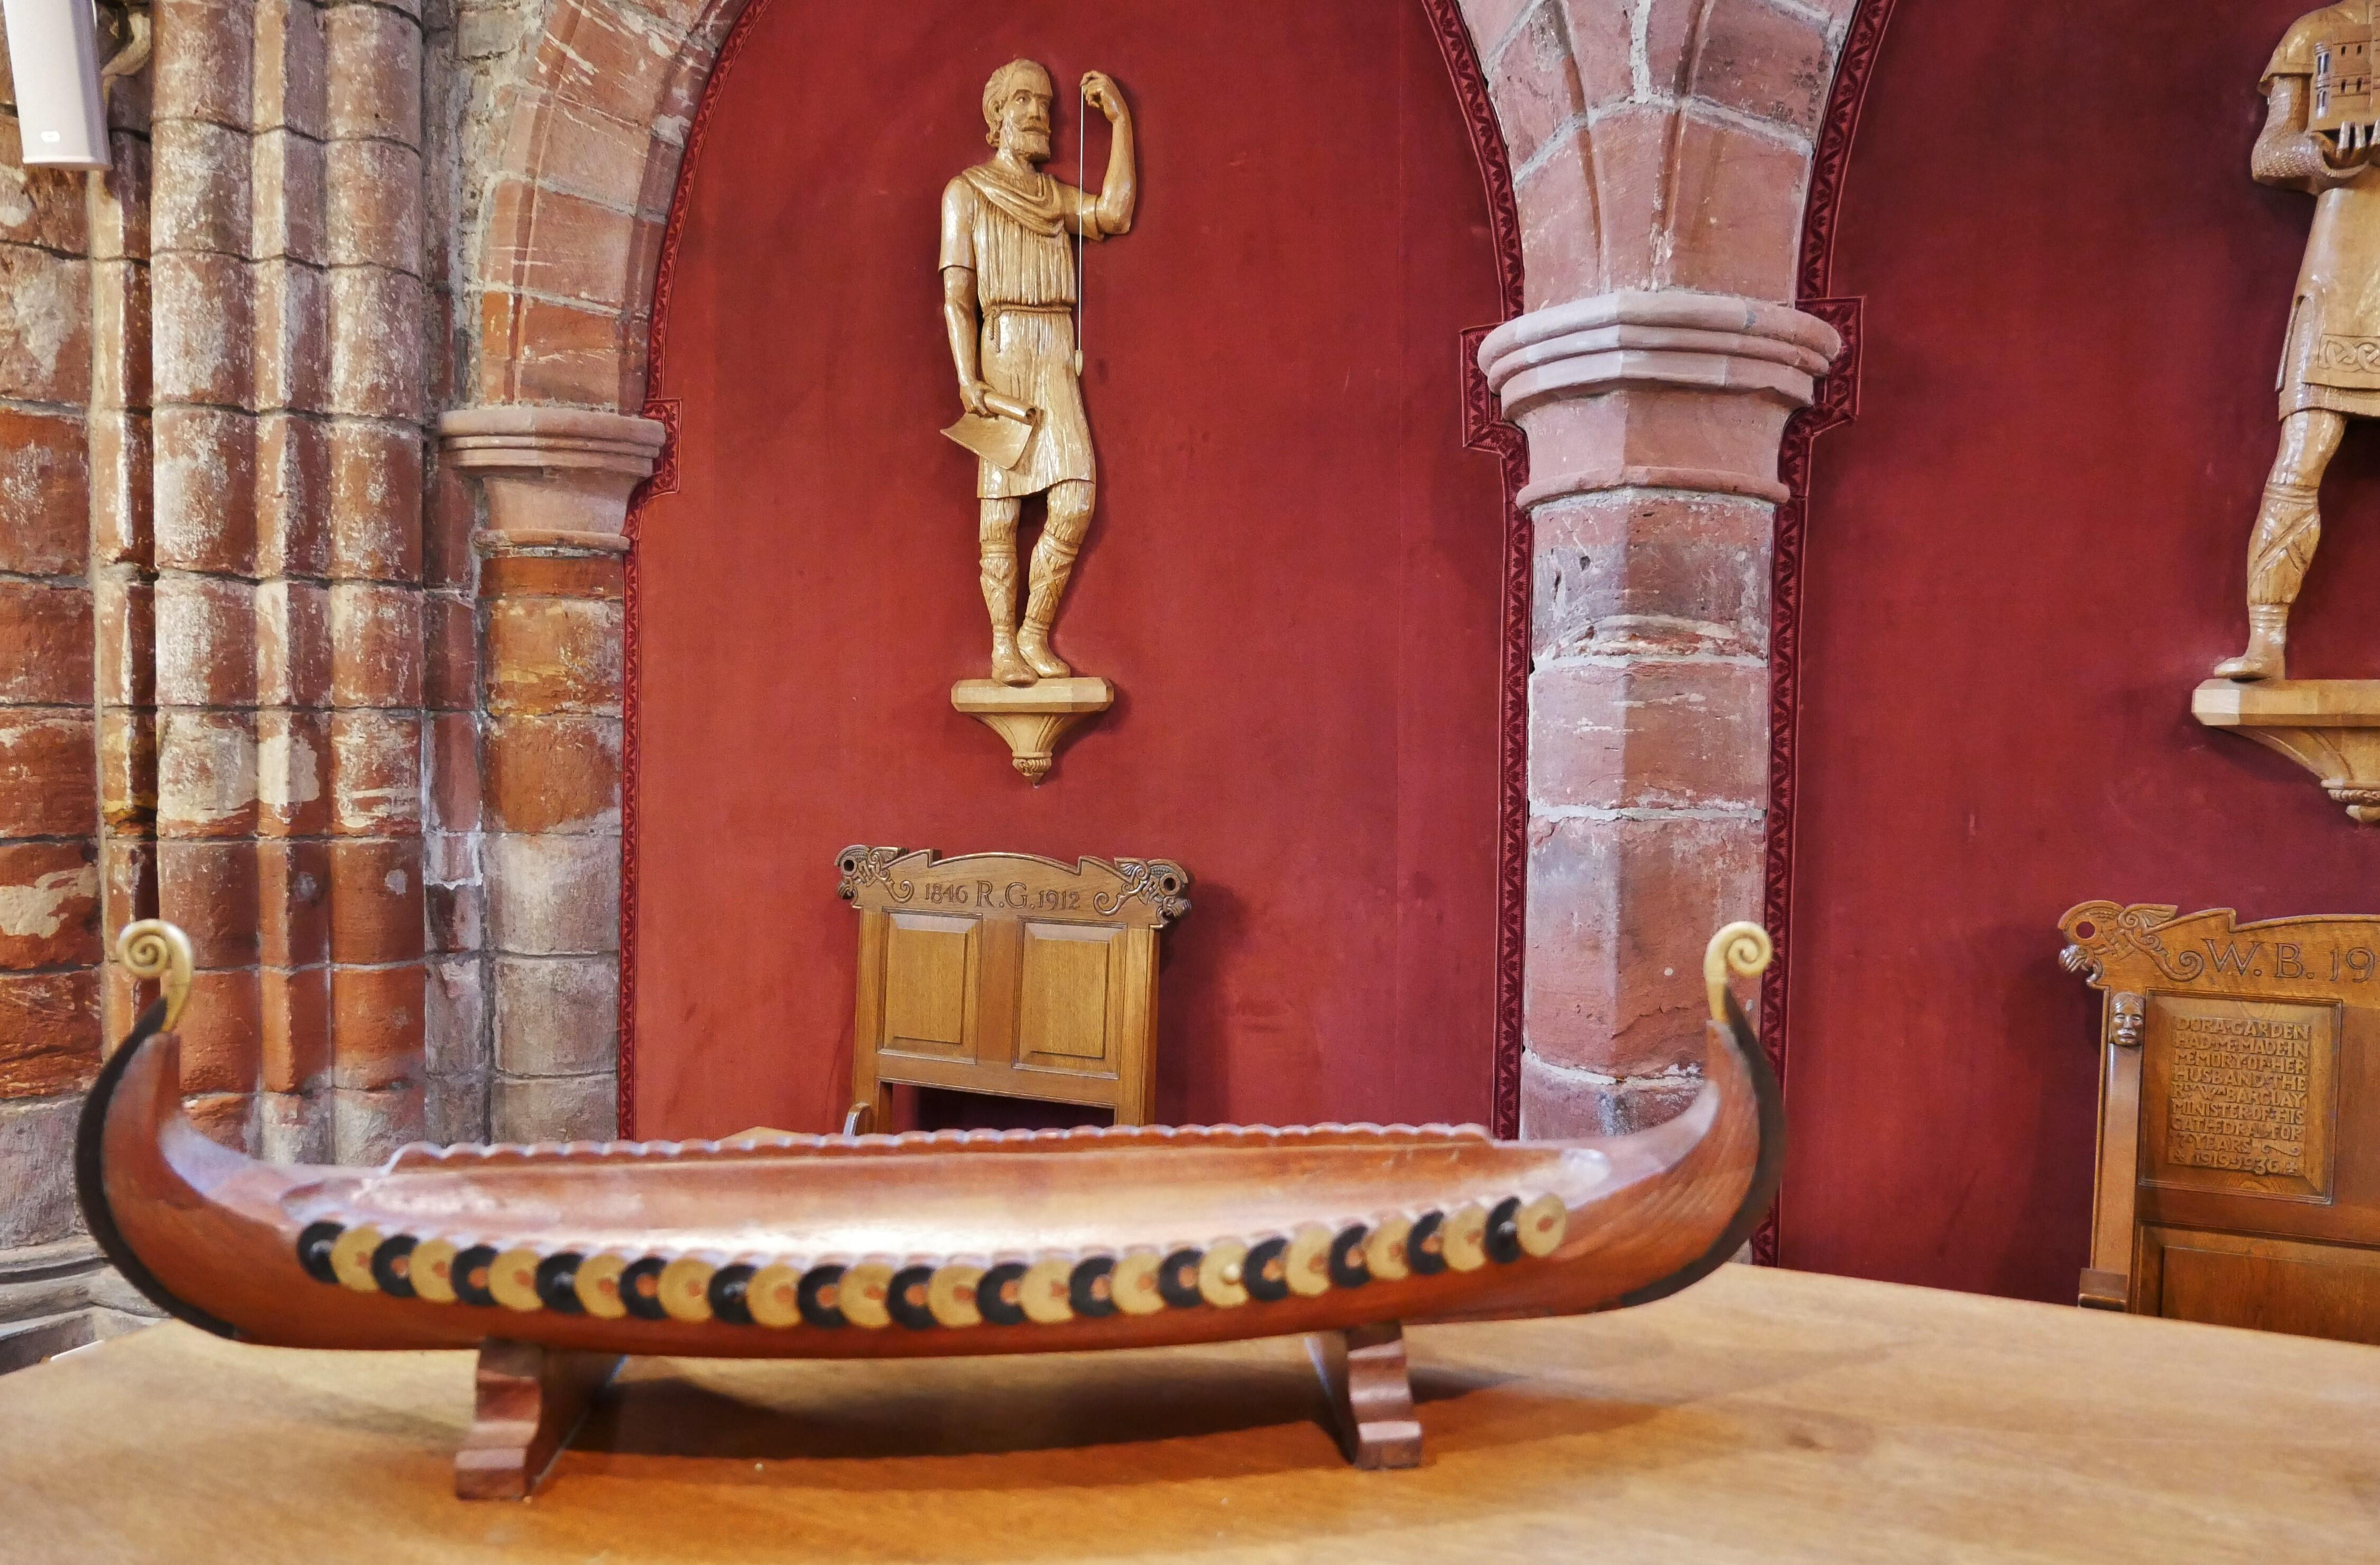 Carved representation of Kol Kalisson, St Rognavald's father who oversaw the early building of the cathedral, Kirkwall, Orkney, Scotland, UK